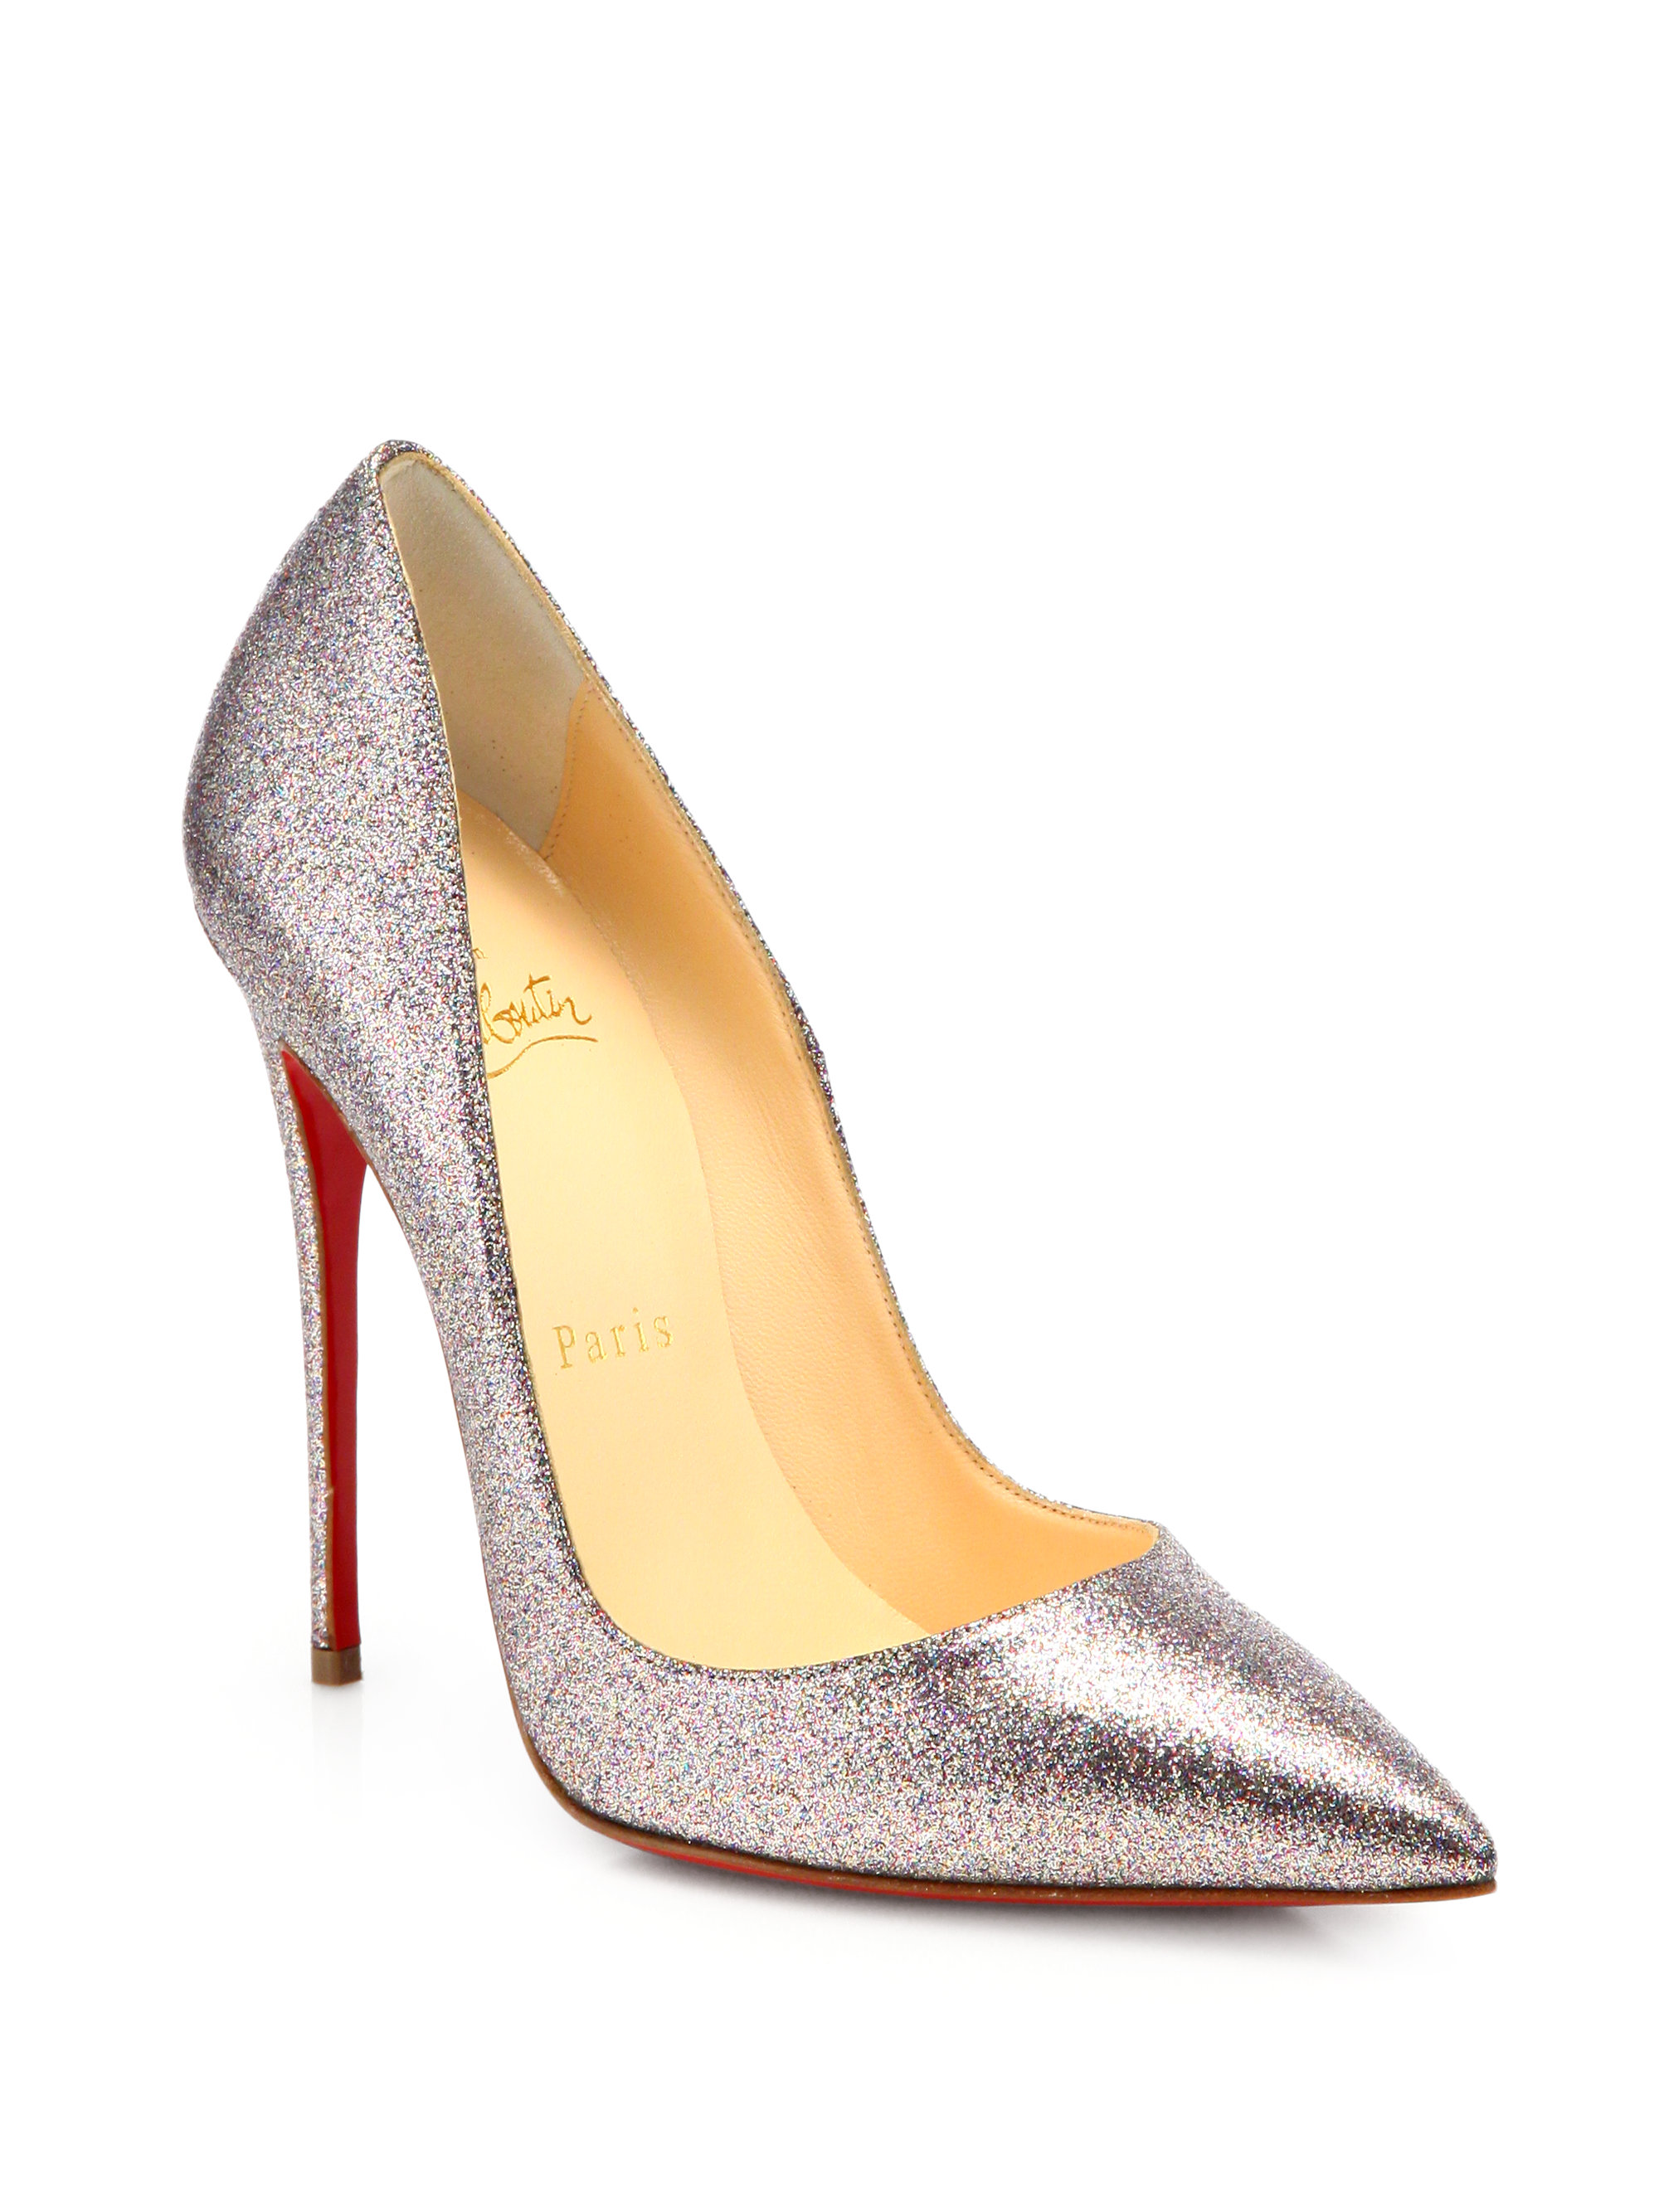 christian louboutin glitter pigalle pumps, red bottom ...